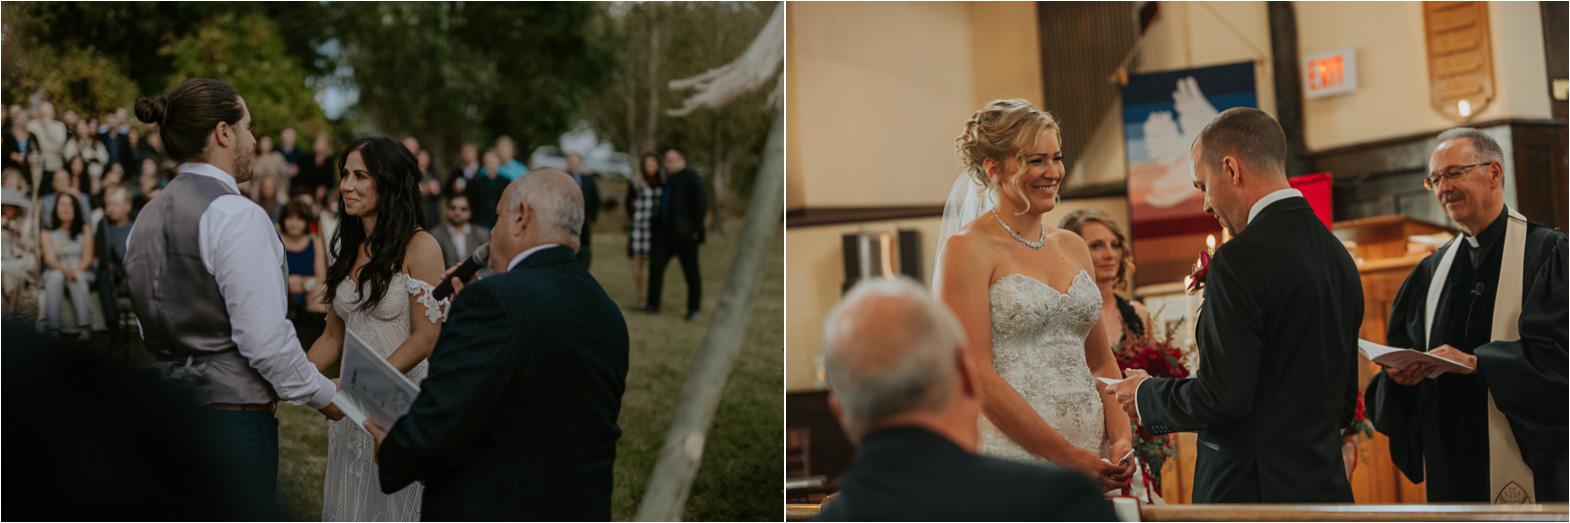 Most memorable wedding day moments - exchanging vows